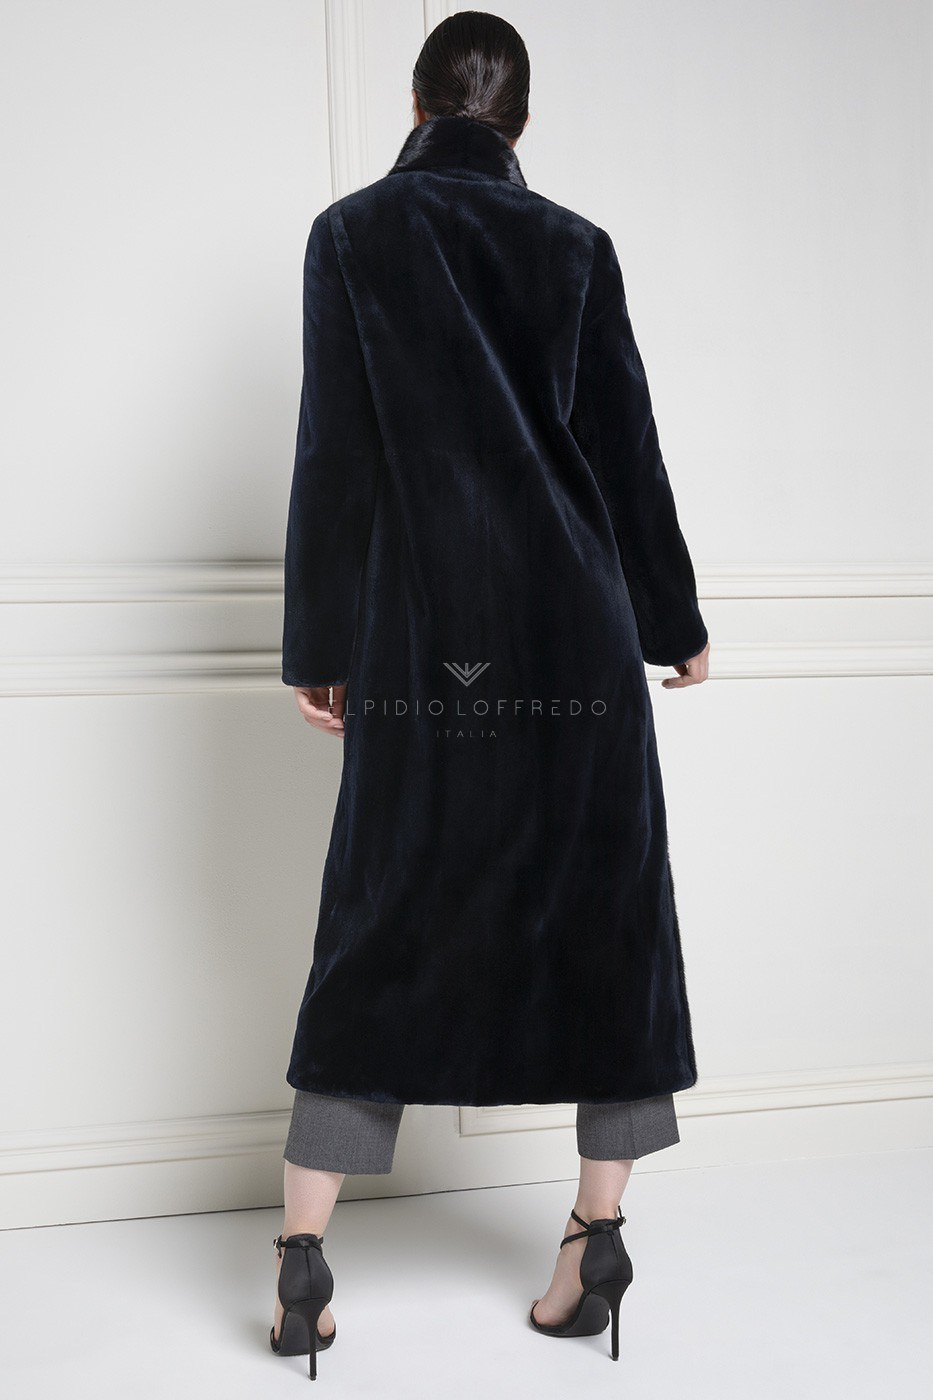 Sheared Mink Coat with Rever Collar - Length 120 cm